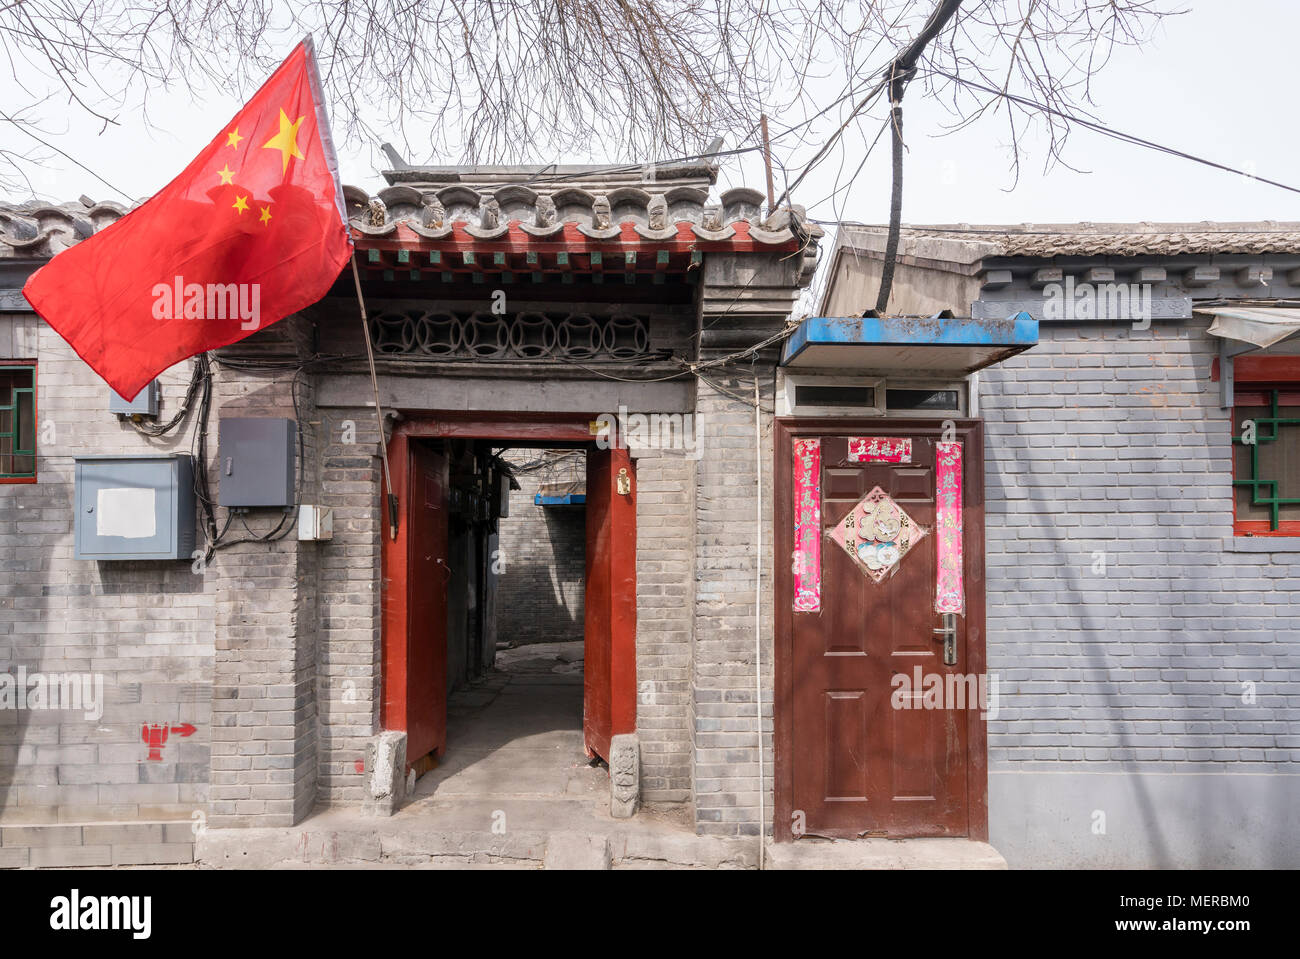 Entrance to a house at a hutong in Beijing - Stock Image